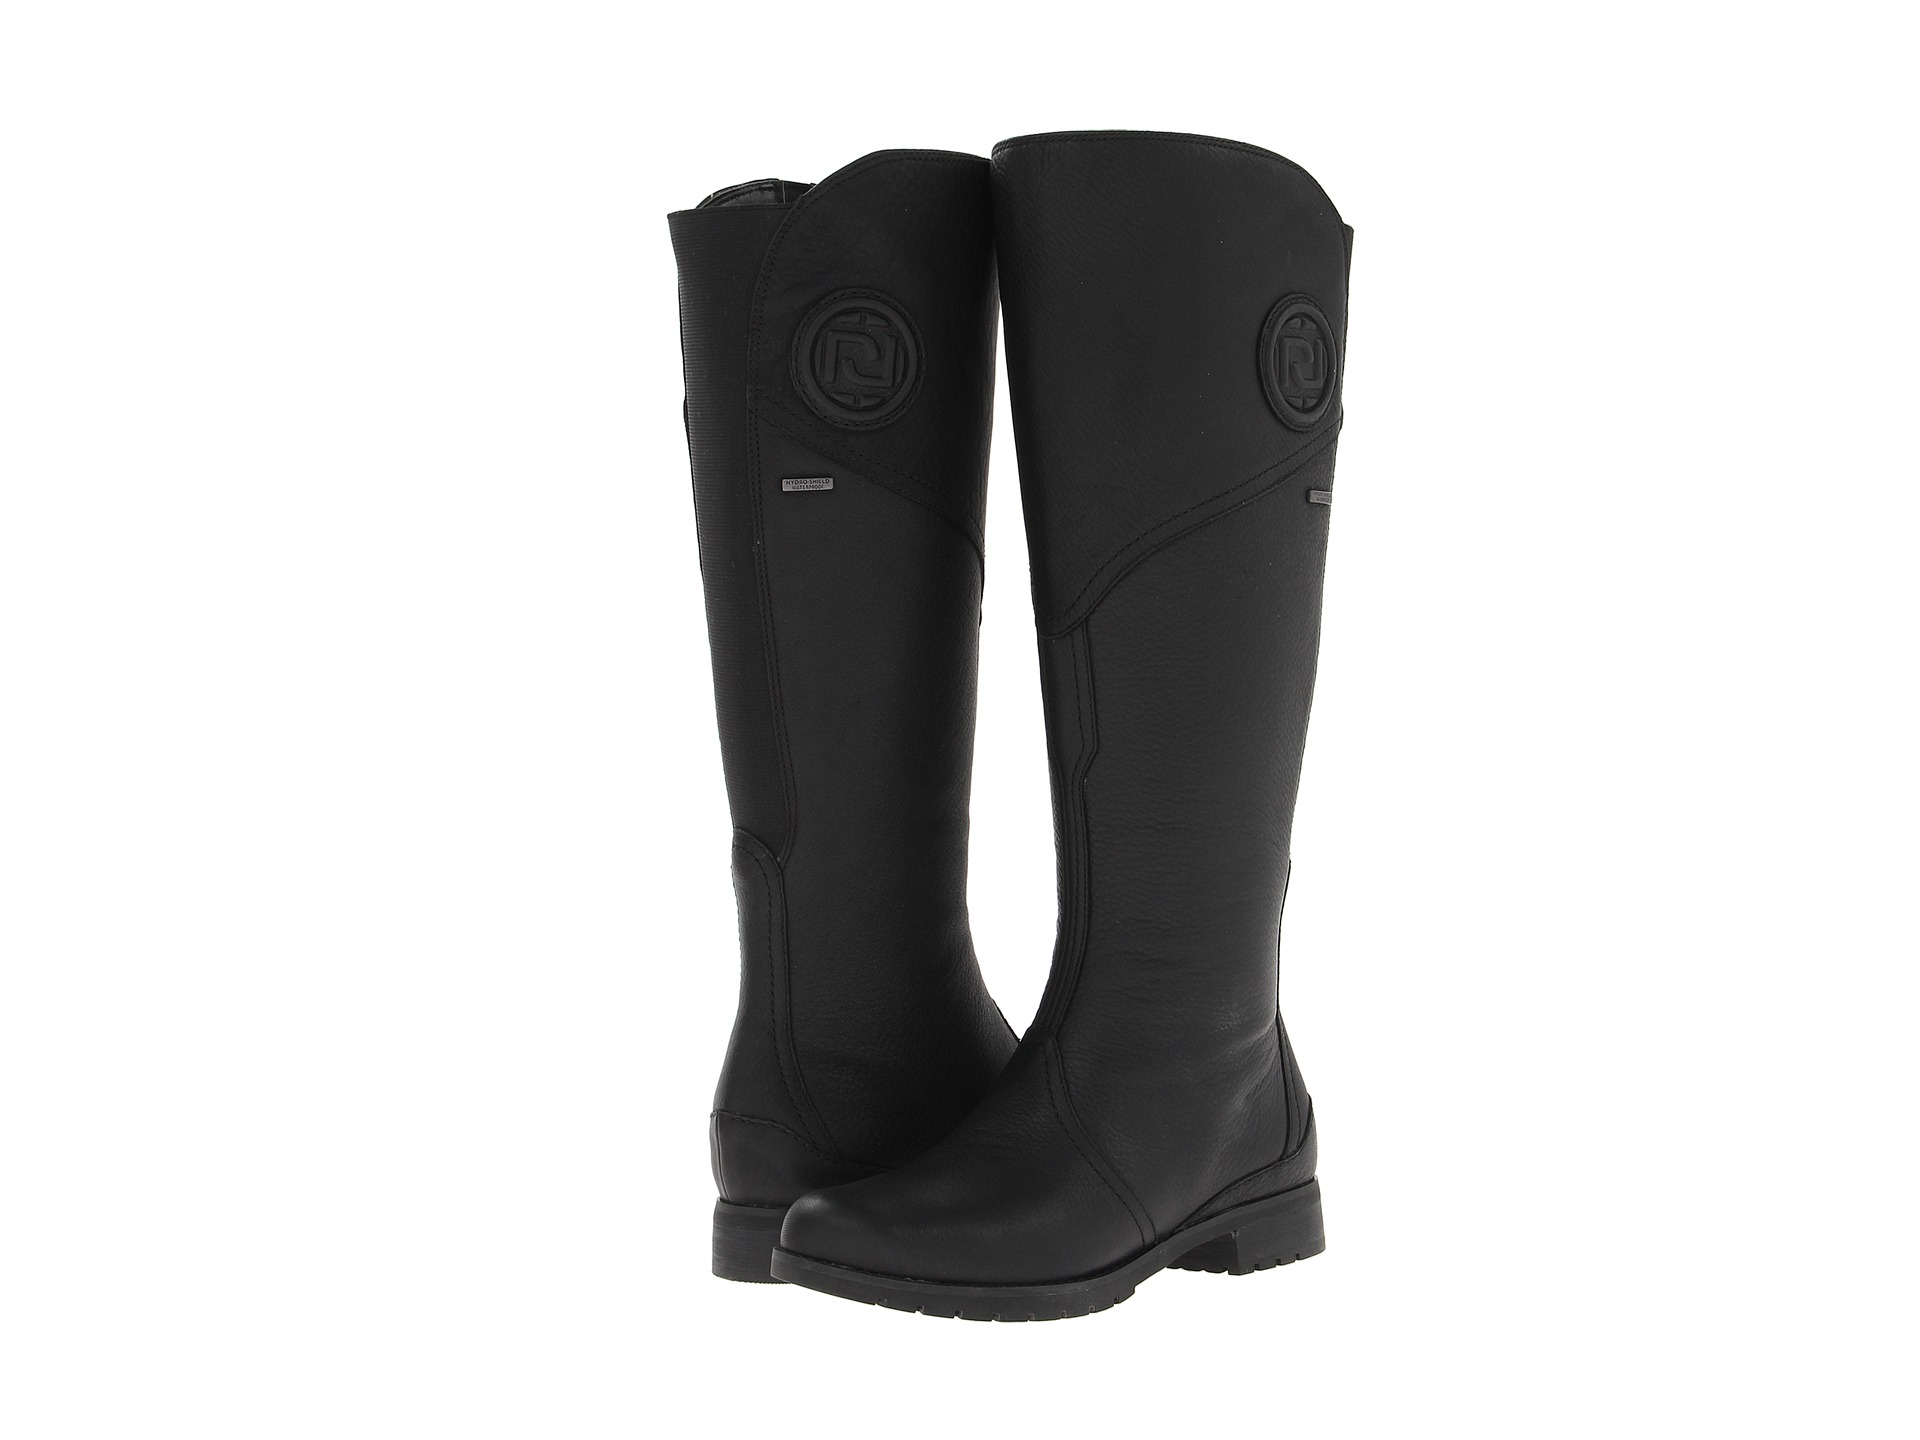 Rockport Tristina Gore Tall Waterproof Boot - Wide Calf - 6pm.com